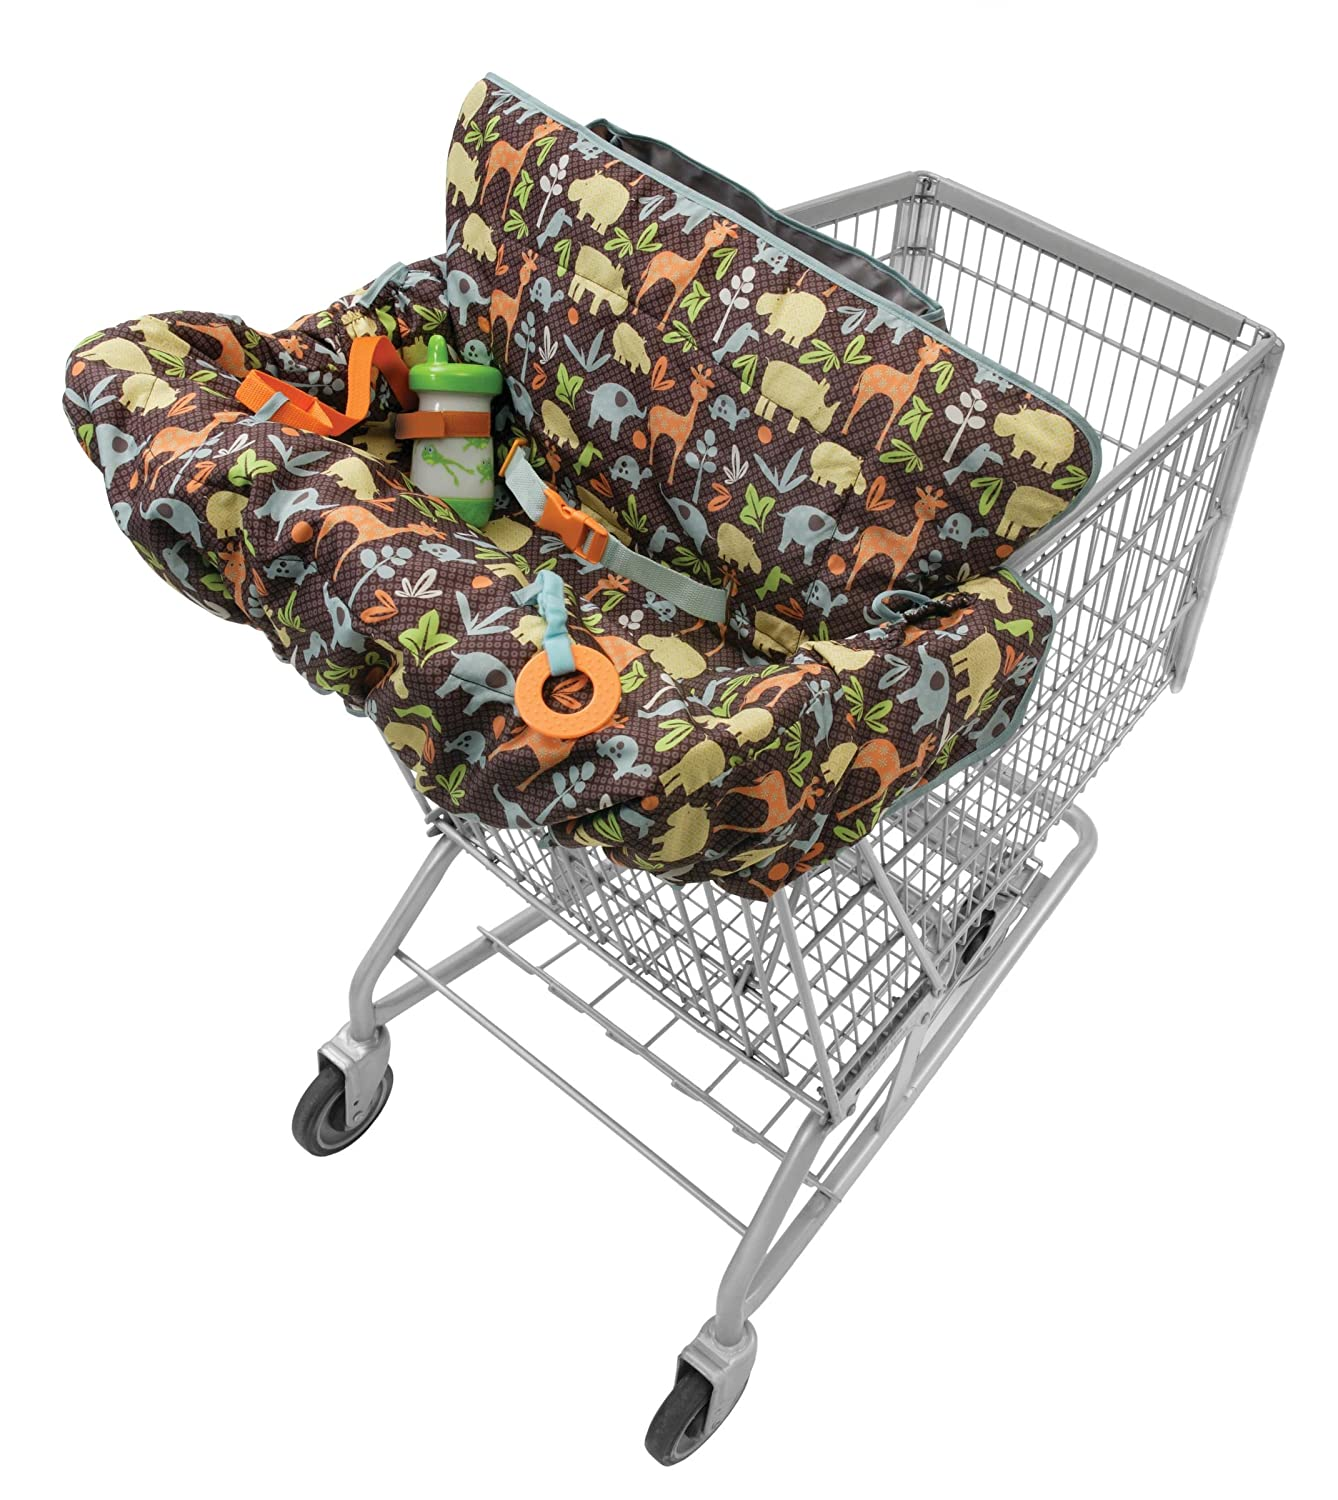 Infantino Compact 2-in-1 Shopping Cart Cover 204-107A